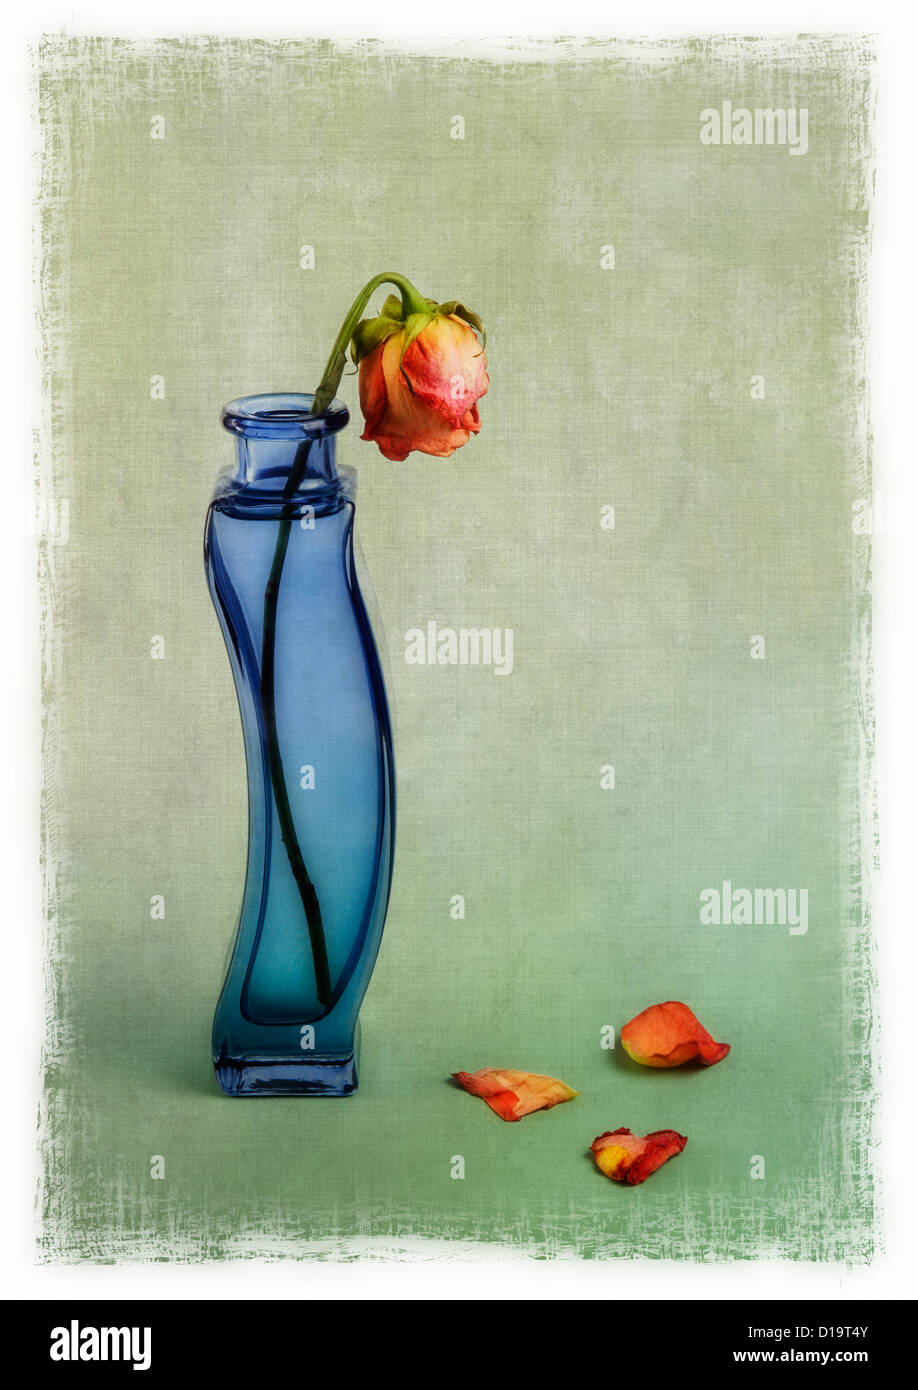 red rose in blue vase with texture overlay - Stock Image